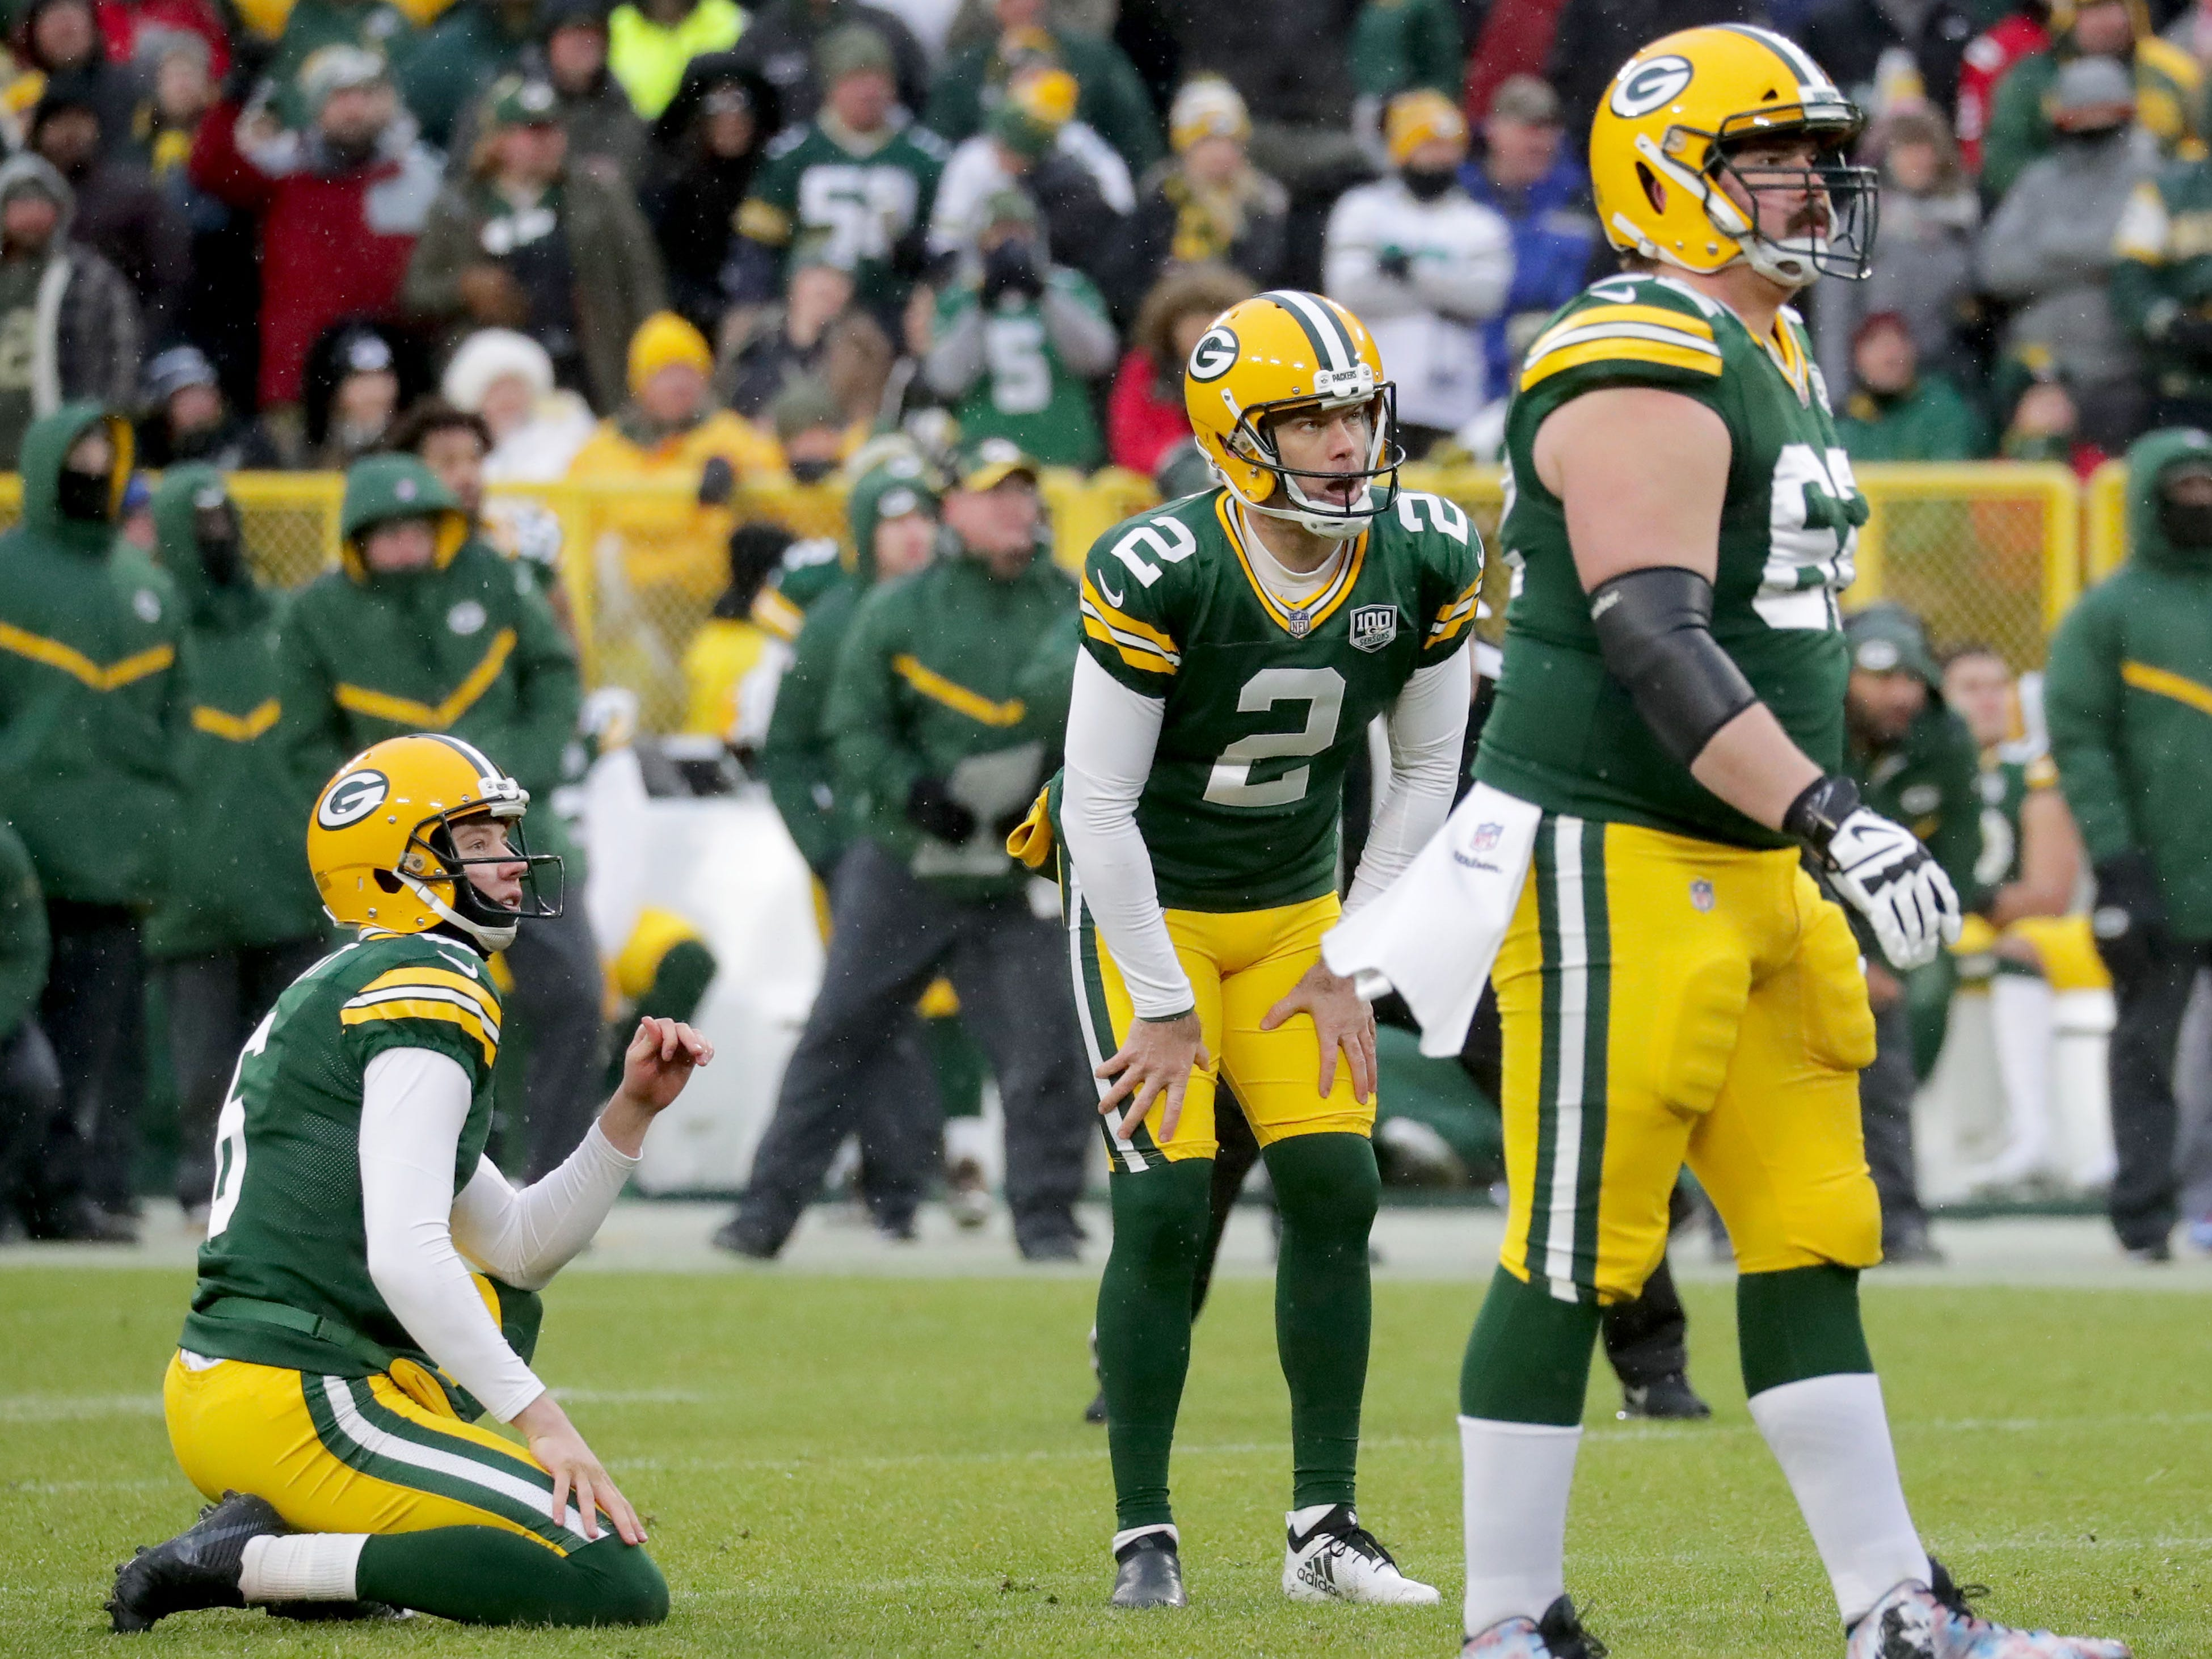 Green Bay Packers kicker Mason Crosby (2) reacts to missing a game tying field goal as time expires  during the 4th quarter of Green Bay Packers game 20-17 loss against the Arizona Cardinals on Sunday, December 2, 2018 at Lambeau Field in Green Bay, Wis. Mike De Sisti / USA TODAY NETWORK-Wis